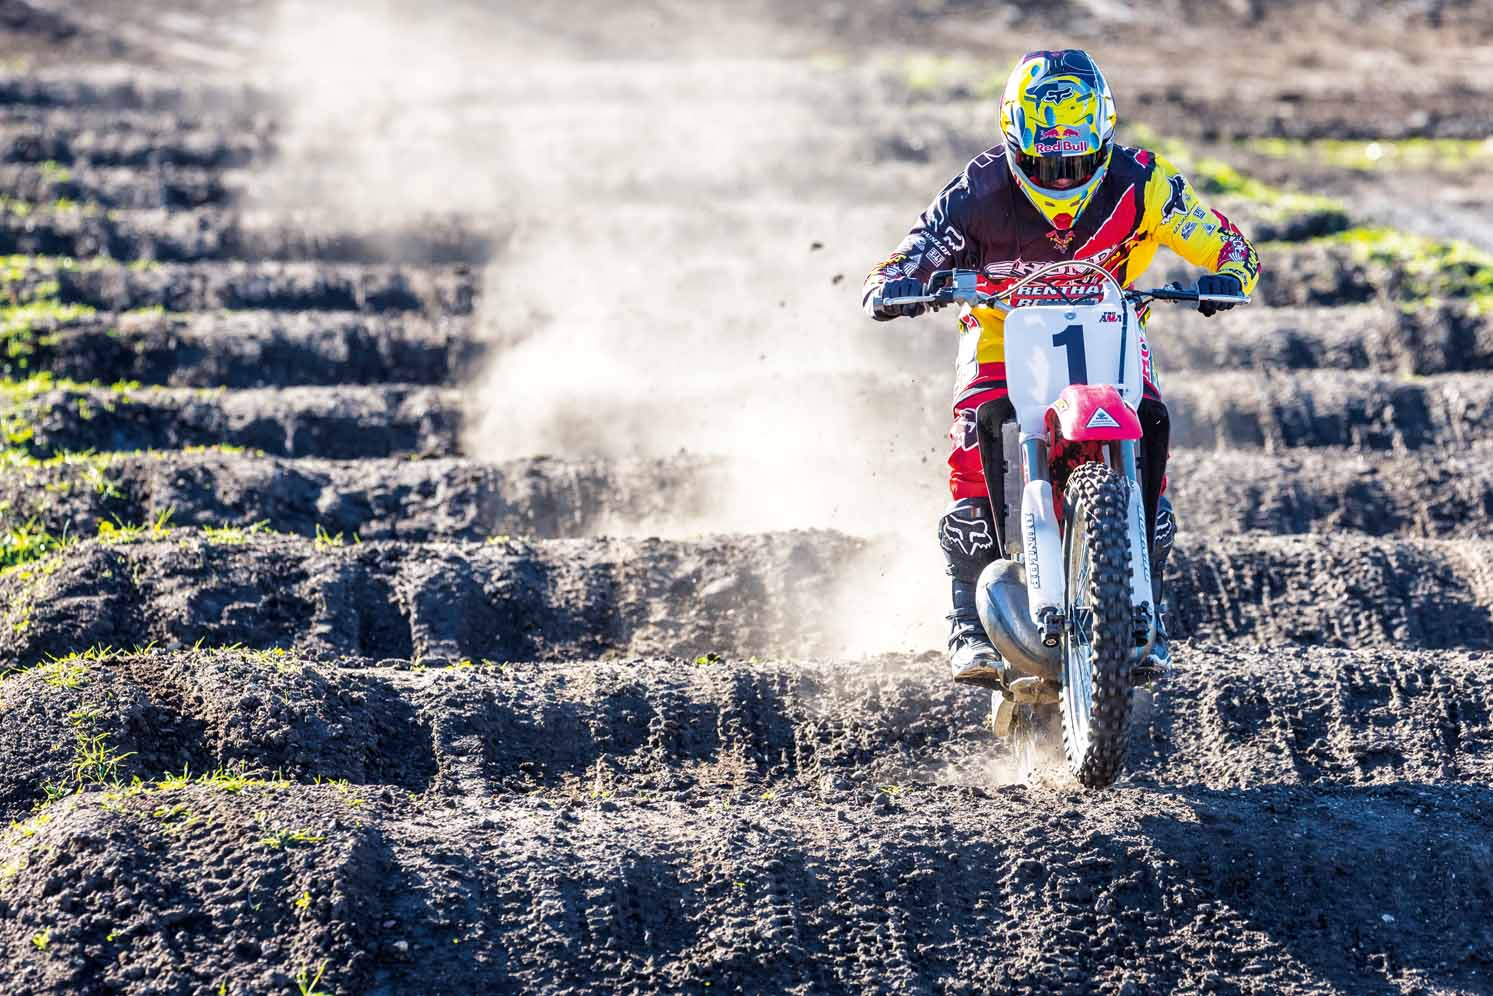 Ken Roczen rides Jeremy McGrath's 1996 Honda CR250R during a video shoot recreating segments from the original Terra Firma 2 motocross video at Castillo Ranch in Los Alamos, California, USA on 28 December 2016. // Garth Milan/Red Bull Content Pool // P-20170109-01442 // Usage for editorial use only // Please go to www.redbullcontentpool.com for further information. //